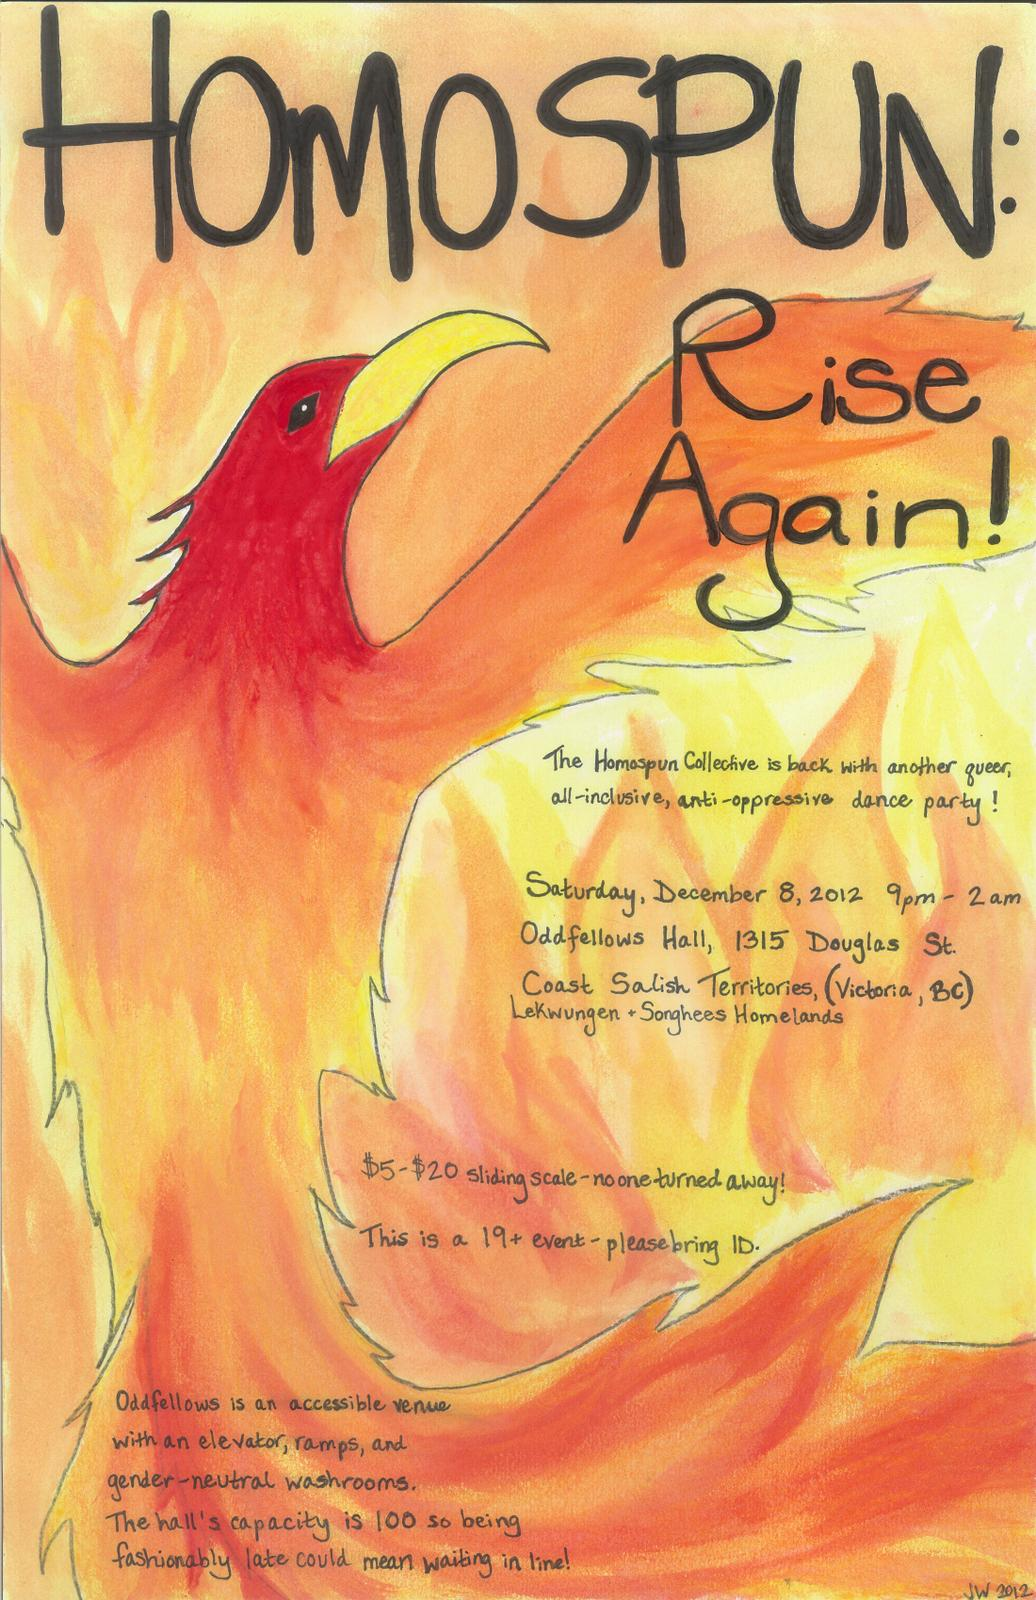 Poster for Homospun: Rise Again